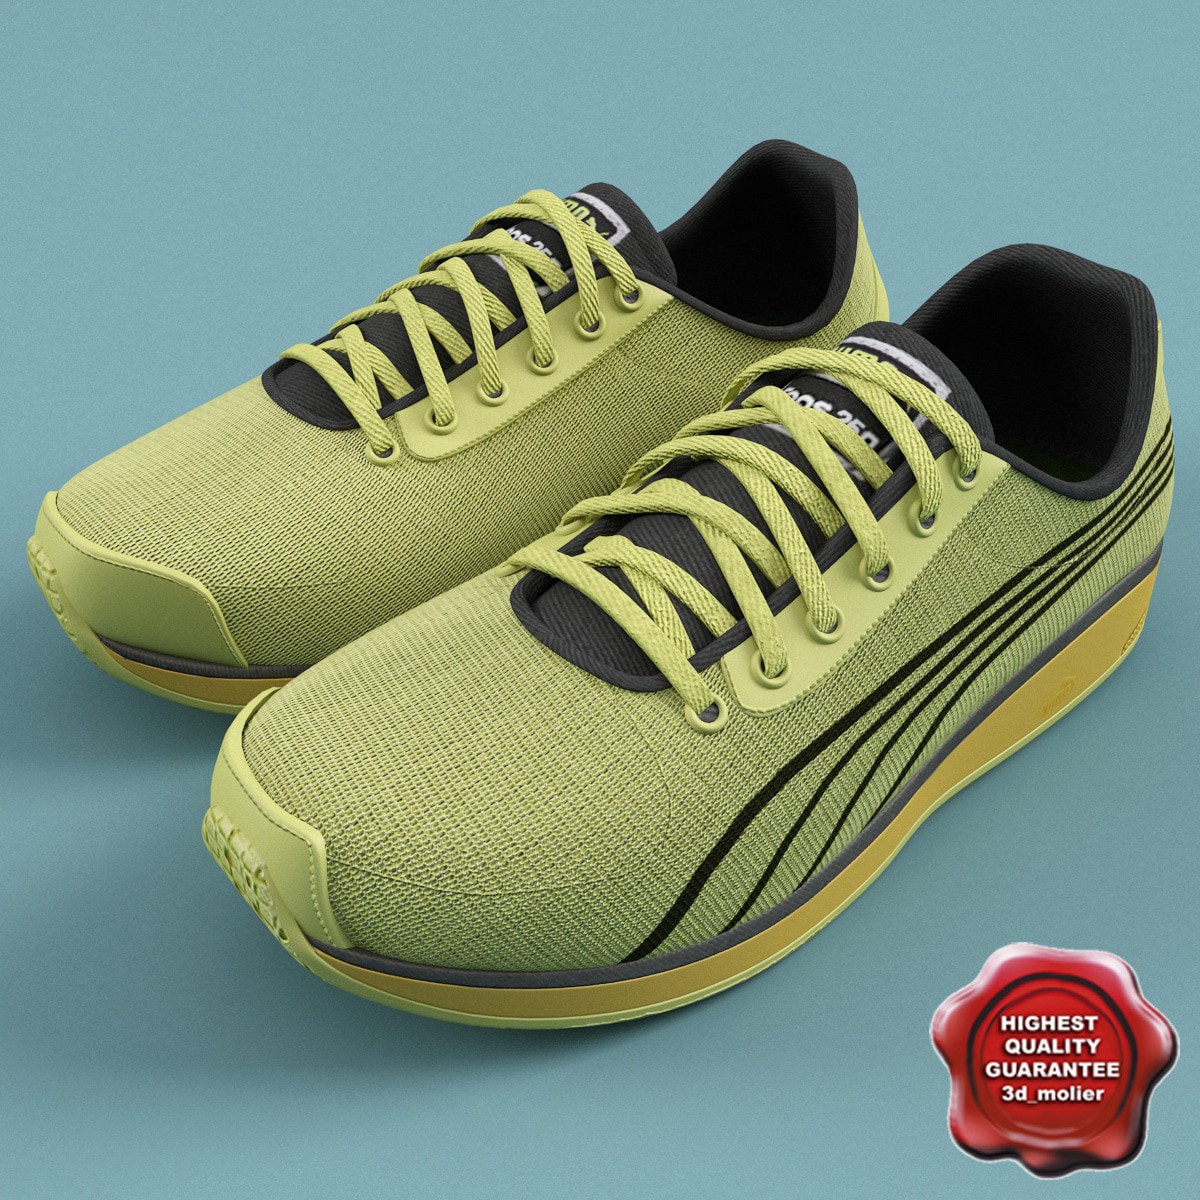 Sneakers_Puma_Faas_250_NM_00.jpg